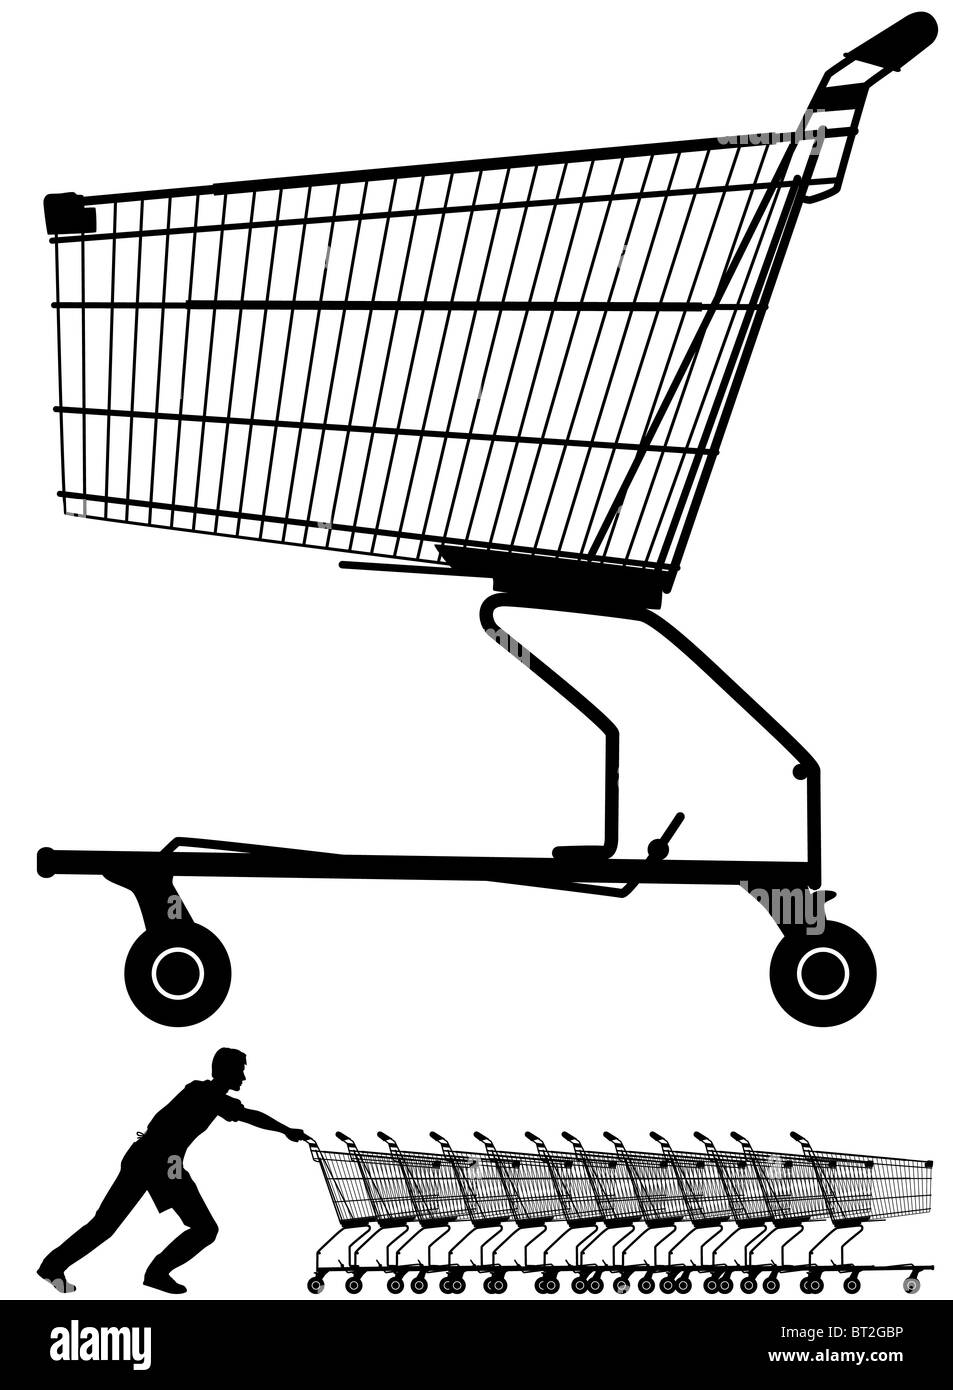 Illustration of a shopping trolley silhouette plus a worker pushing them - Stock Image